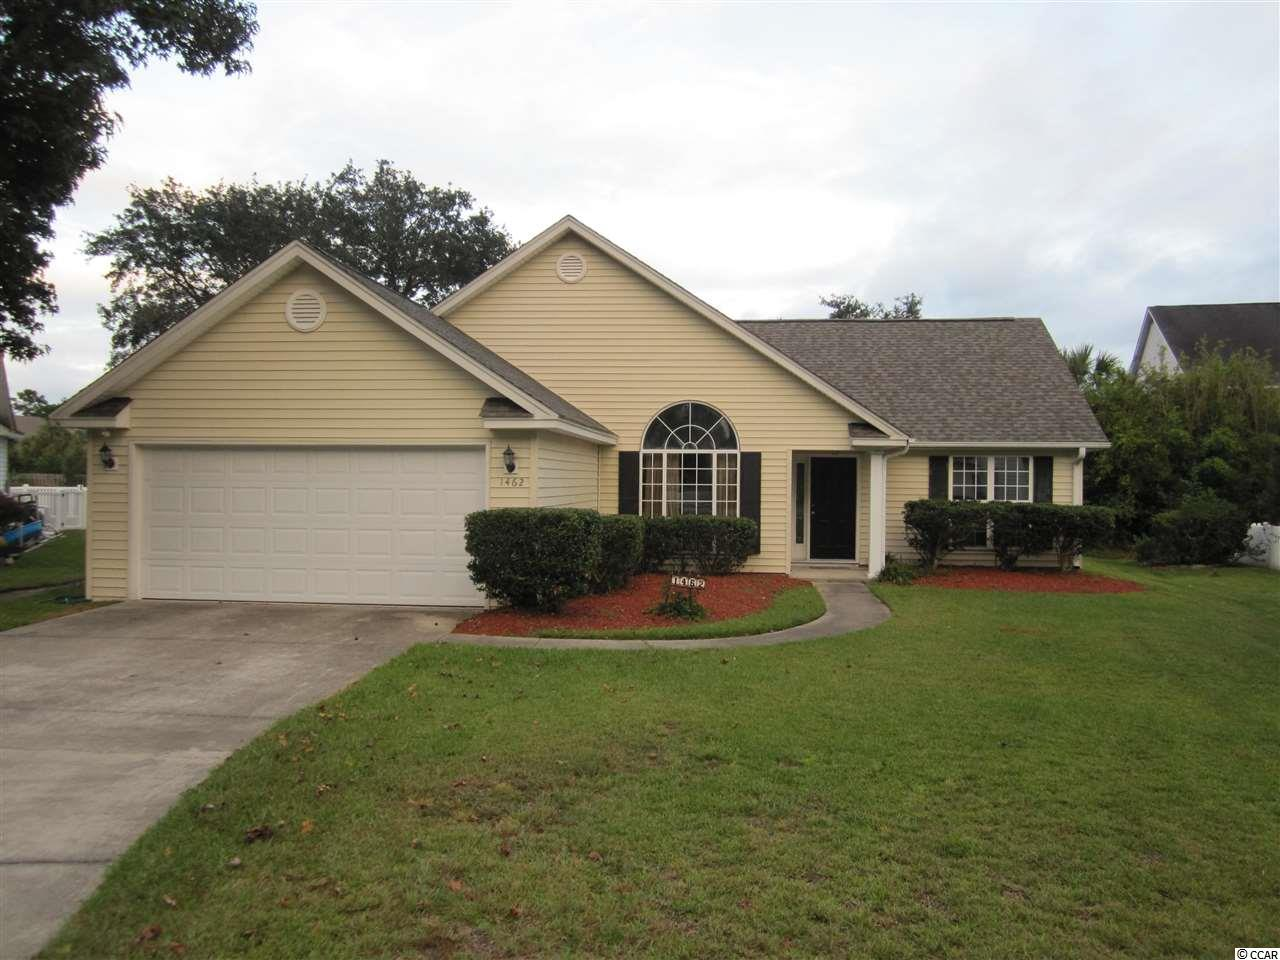 Excellent opportunity to make this very nice spacious 3 bedroom, 2 full bathroom home your very own!  Located in the popular and well established Ashton Glenn neighborhood in the Surfside Beach area.  Features include vaulted ceilings in dining room, living room, kitchen and master bedroom, split bedroom floor plan, eat-in kitchen with beautiful bay window, two-car attached garage, and fenced back yard with patio!  Master bedroom suite includes large walk-in closet and master bathroom with separate tub and tile shower.  Located on quiet cul-de-sac and less than 2 mile golf cart ride to the beach!  New roof in 2019!  Community pool and cabana overlook beautiful natural lake!  Ashton Glenn is centrally located and convenient to beach, restaurants, shopping, golf and medical facilities.  Make sure to make an appointment to view this home soon!  Square footage is approximate and not guaranteed.  Buyer is responsible for verification.